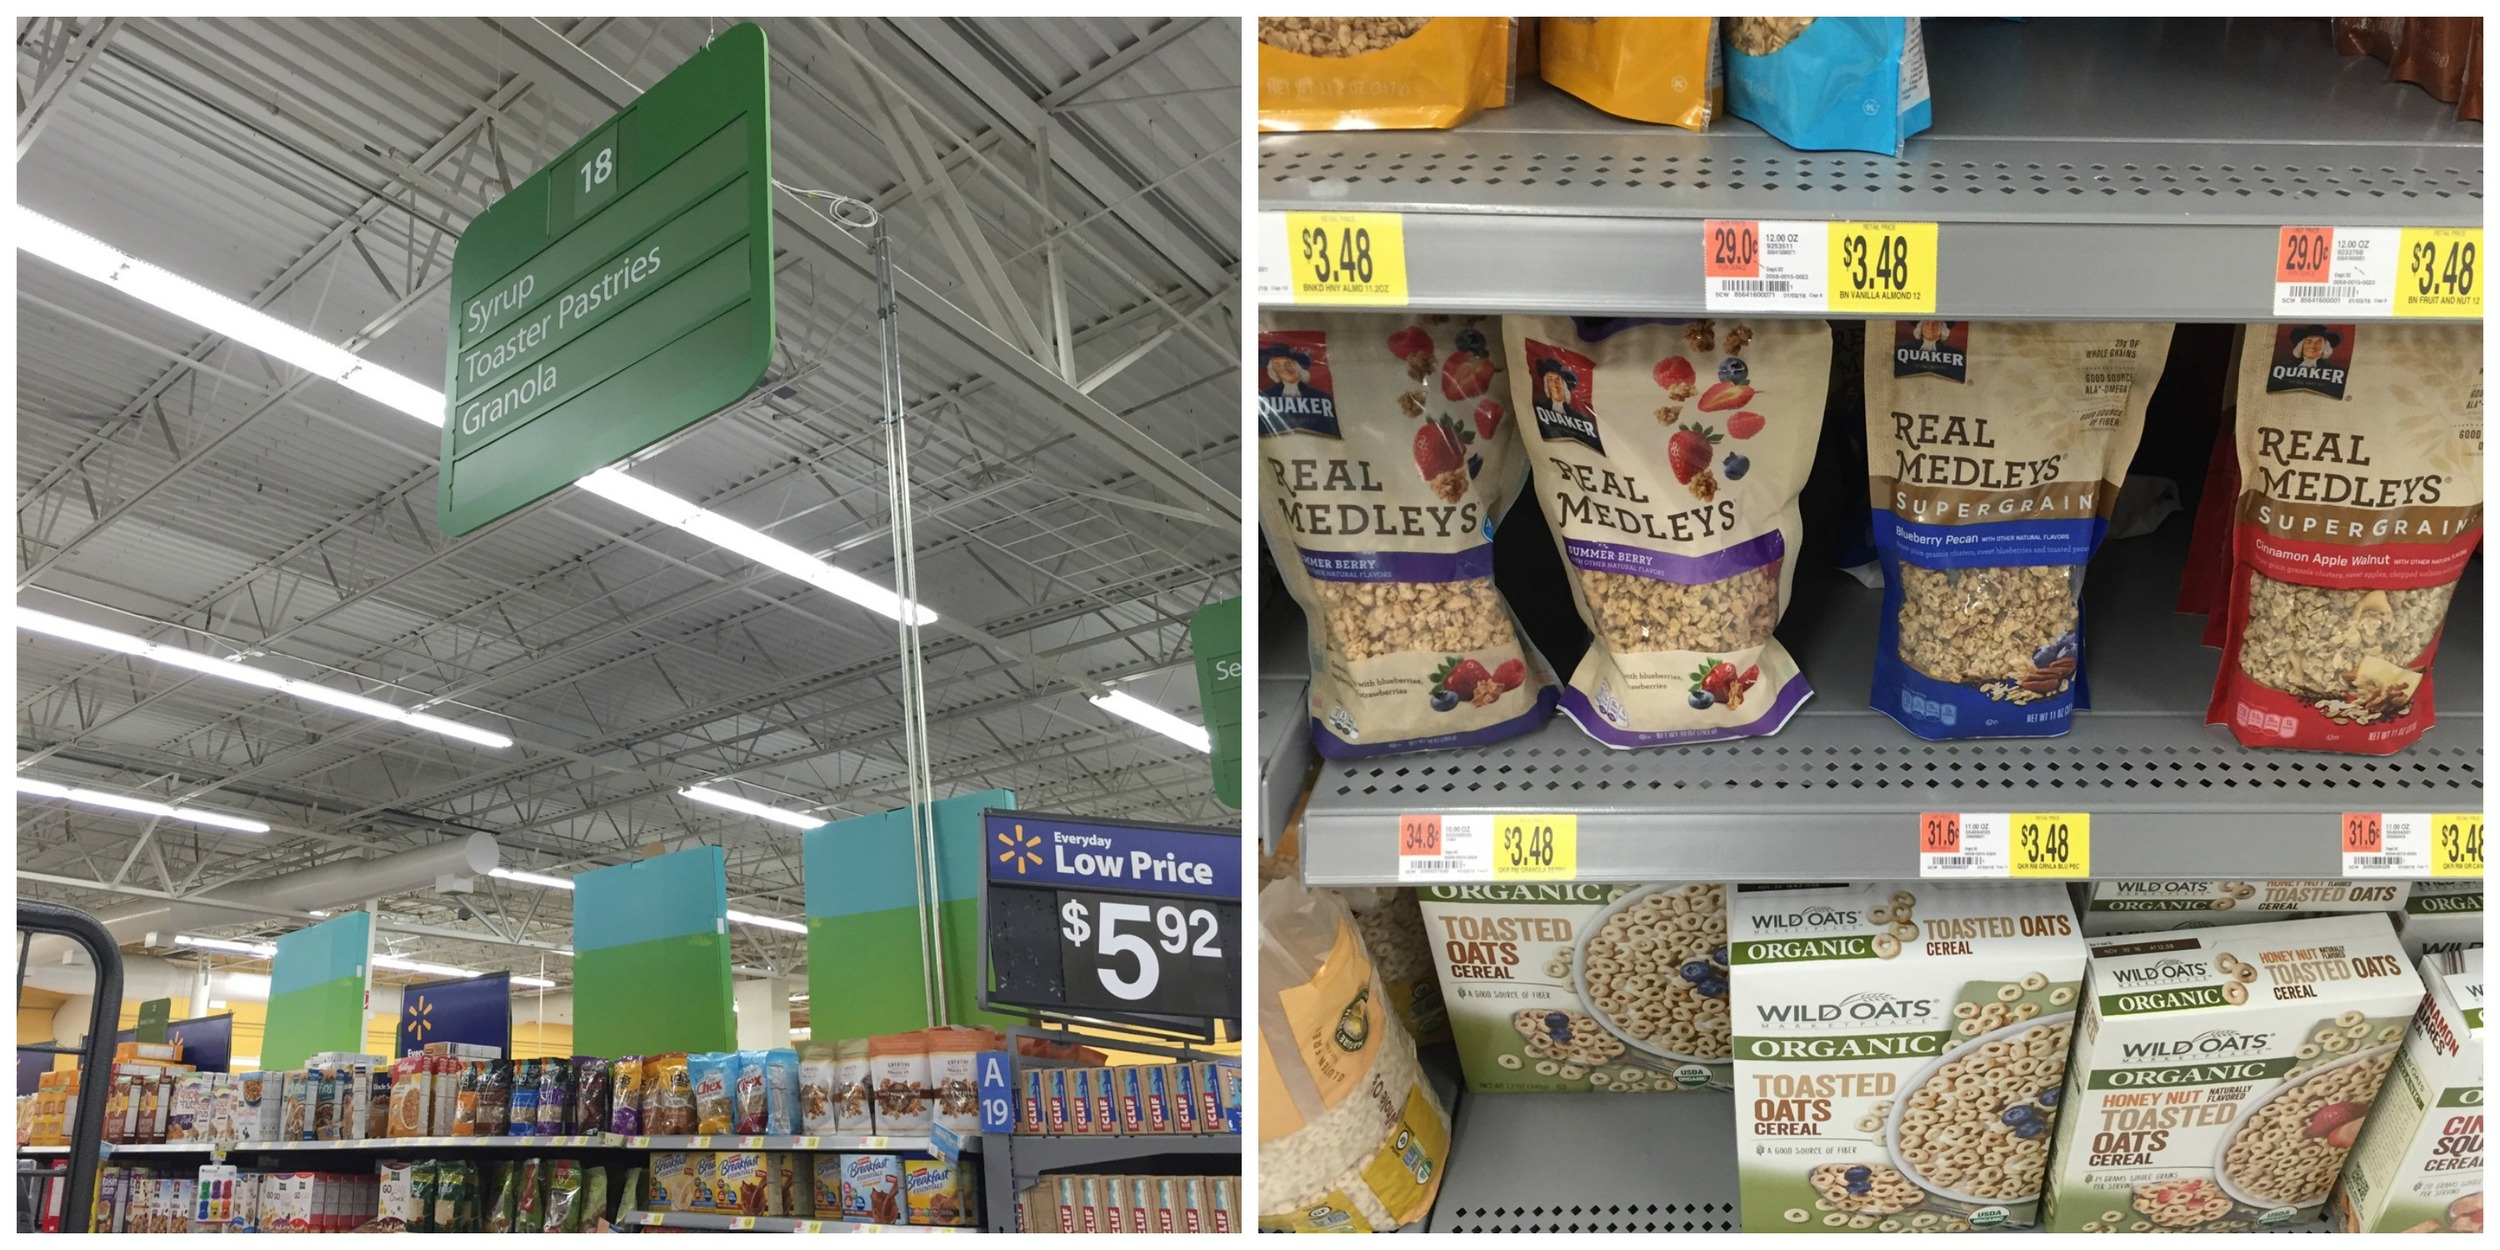 Get in the kitchen with your little ones using Quaker® Real Medleys SuperGrain Granola, found at WalMart